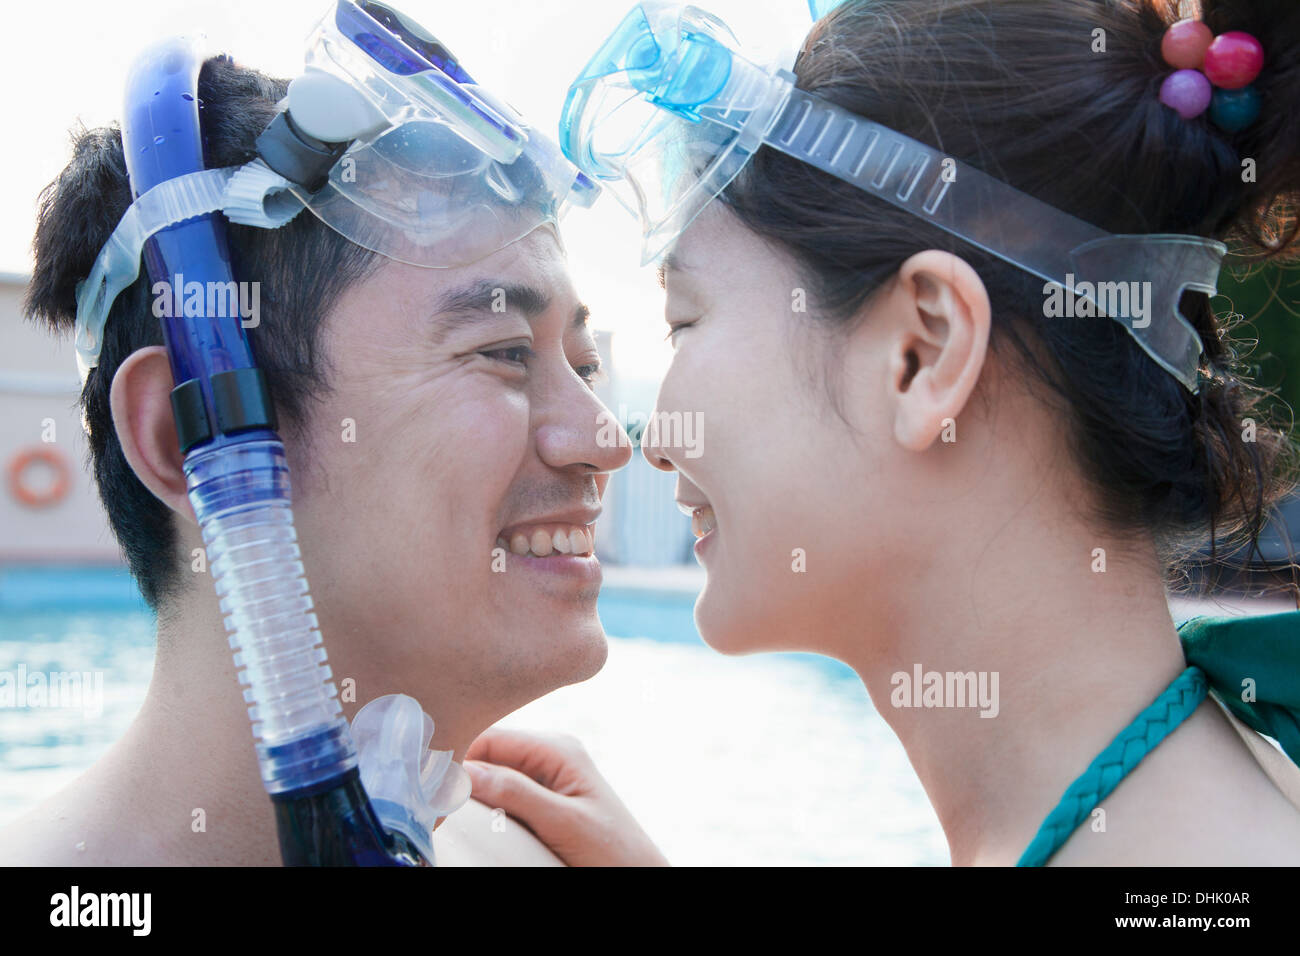 Smiling couple face to face in snorkeling gear in the pool - Stock Image